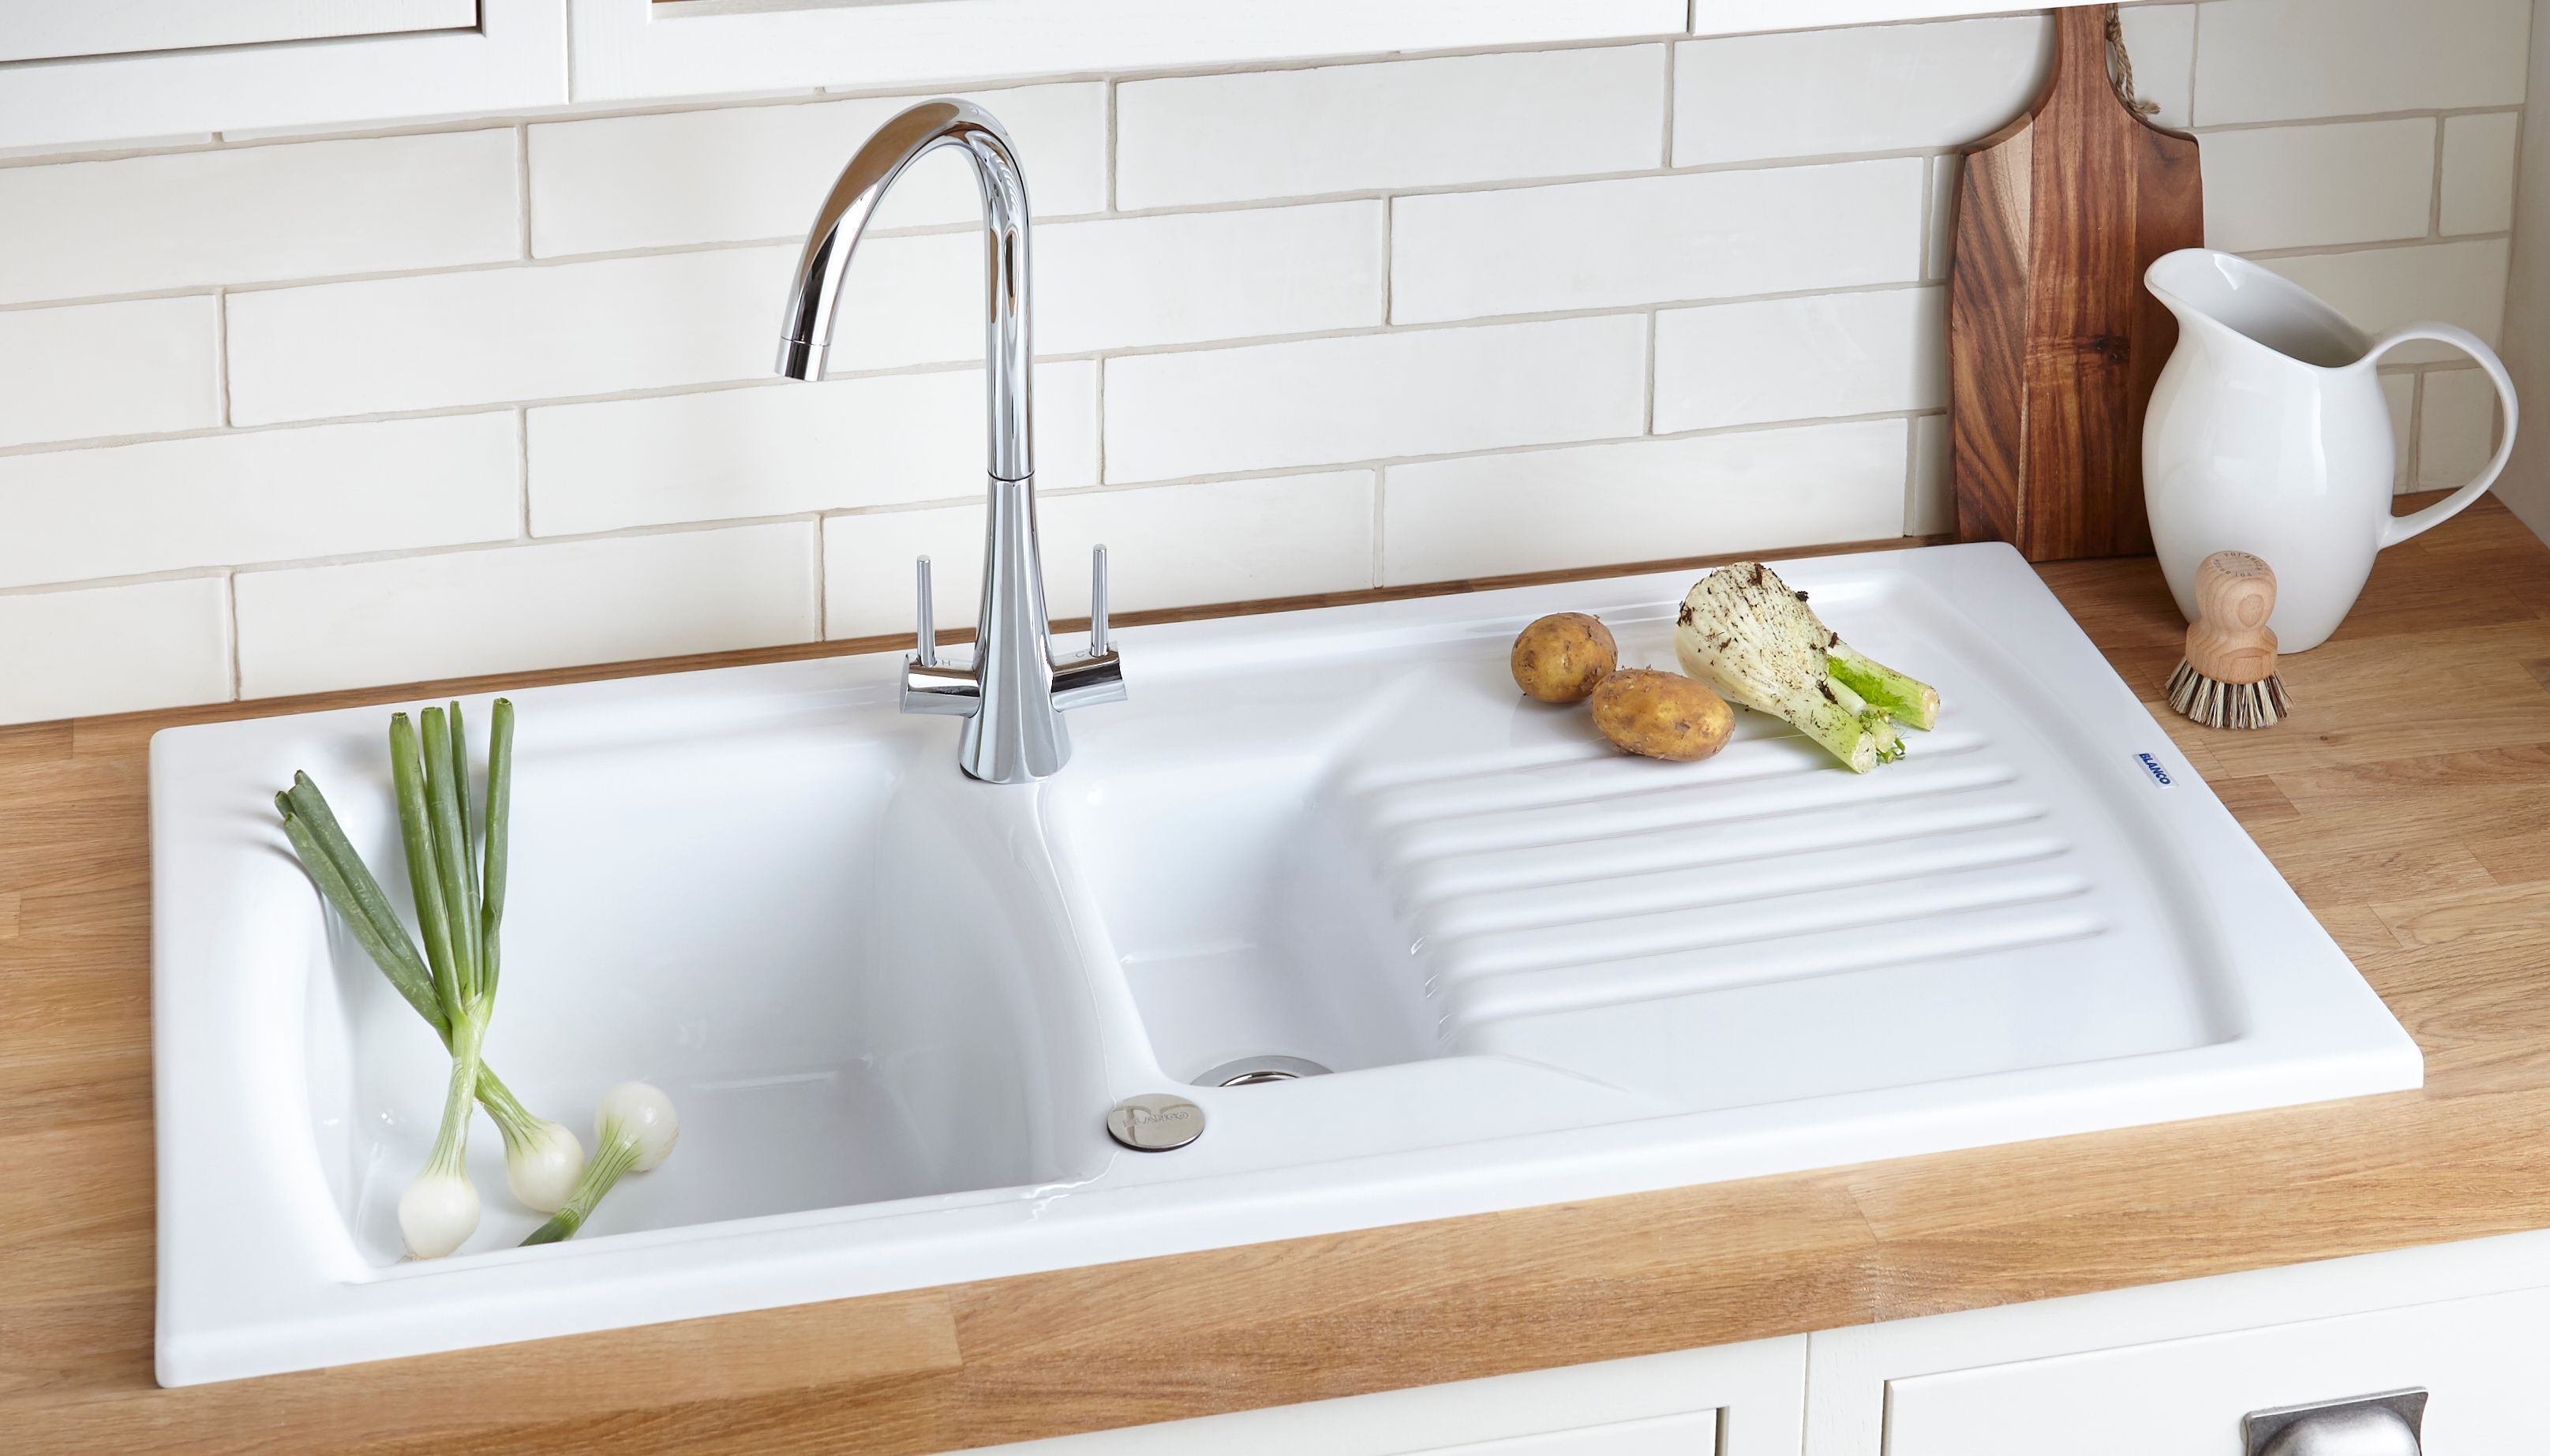 undermount double ceramic kitchen sink cliff kitchen white kitchen sink Harga Wastafel Cuci Piring Keramik Wastafel Pinterest Blanco White Ceramic Kitchen Sink